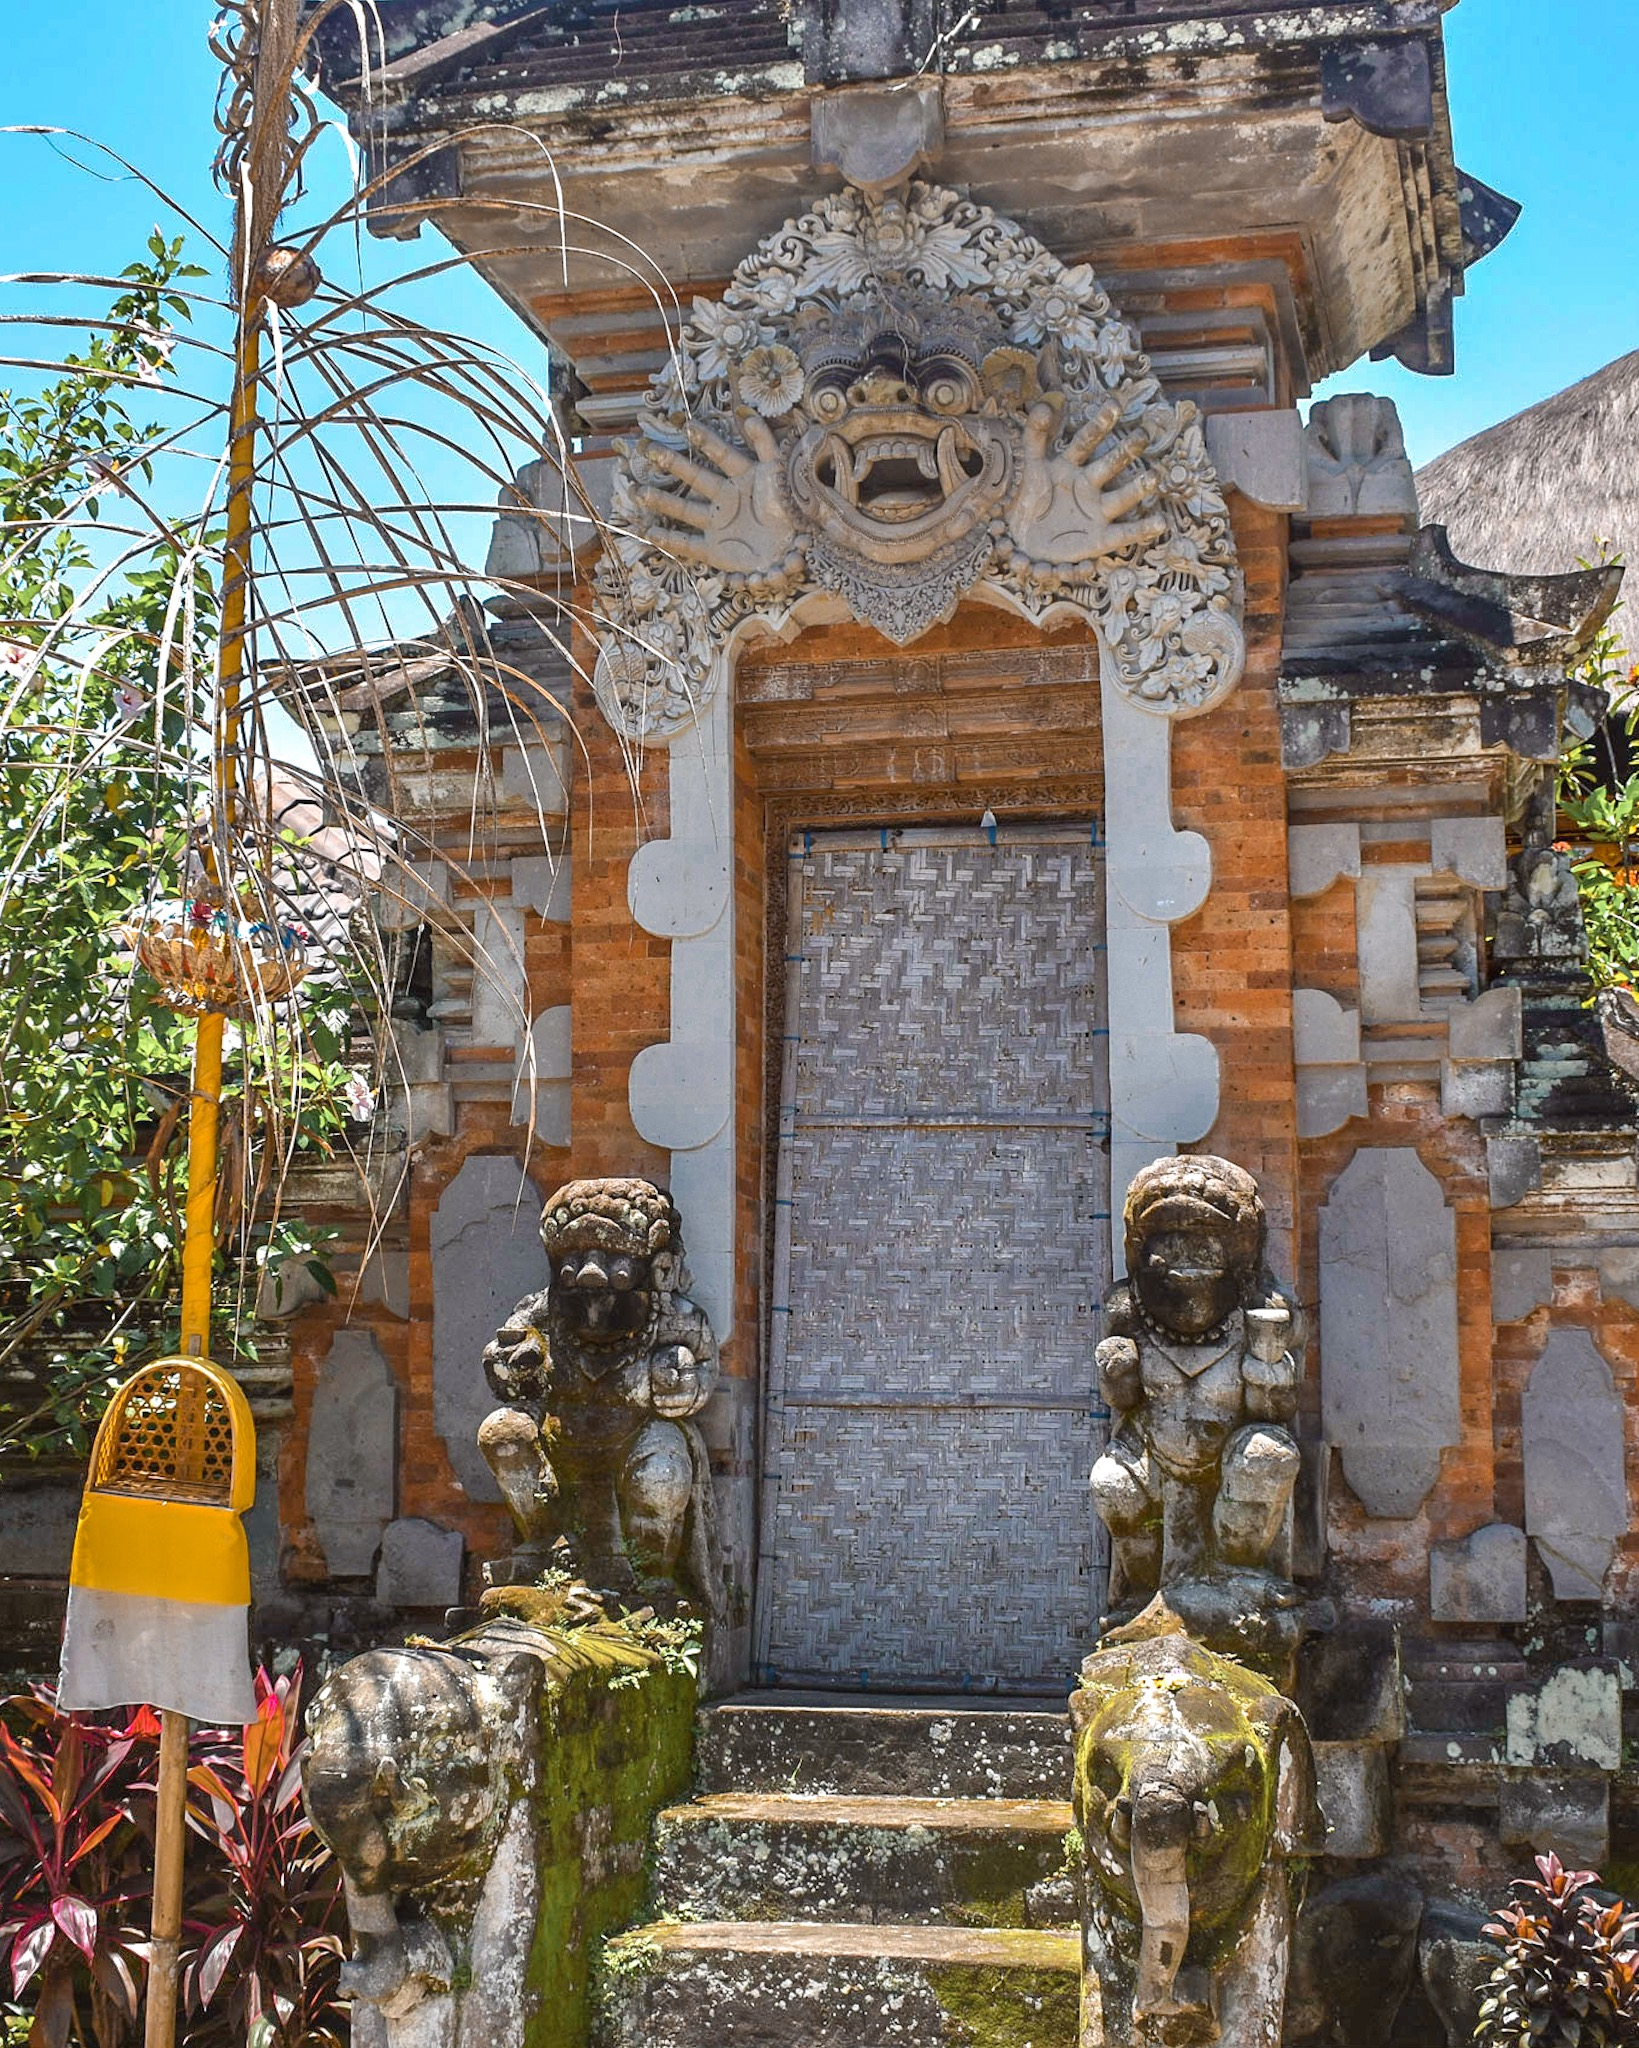 Entrance to a Traditional Balinese Home